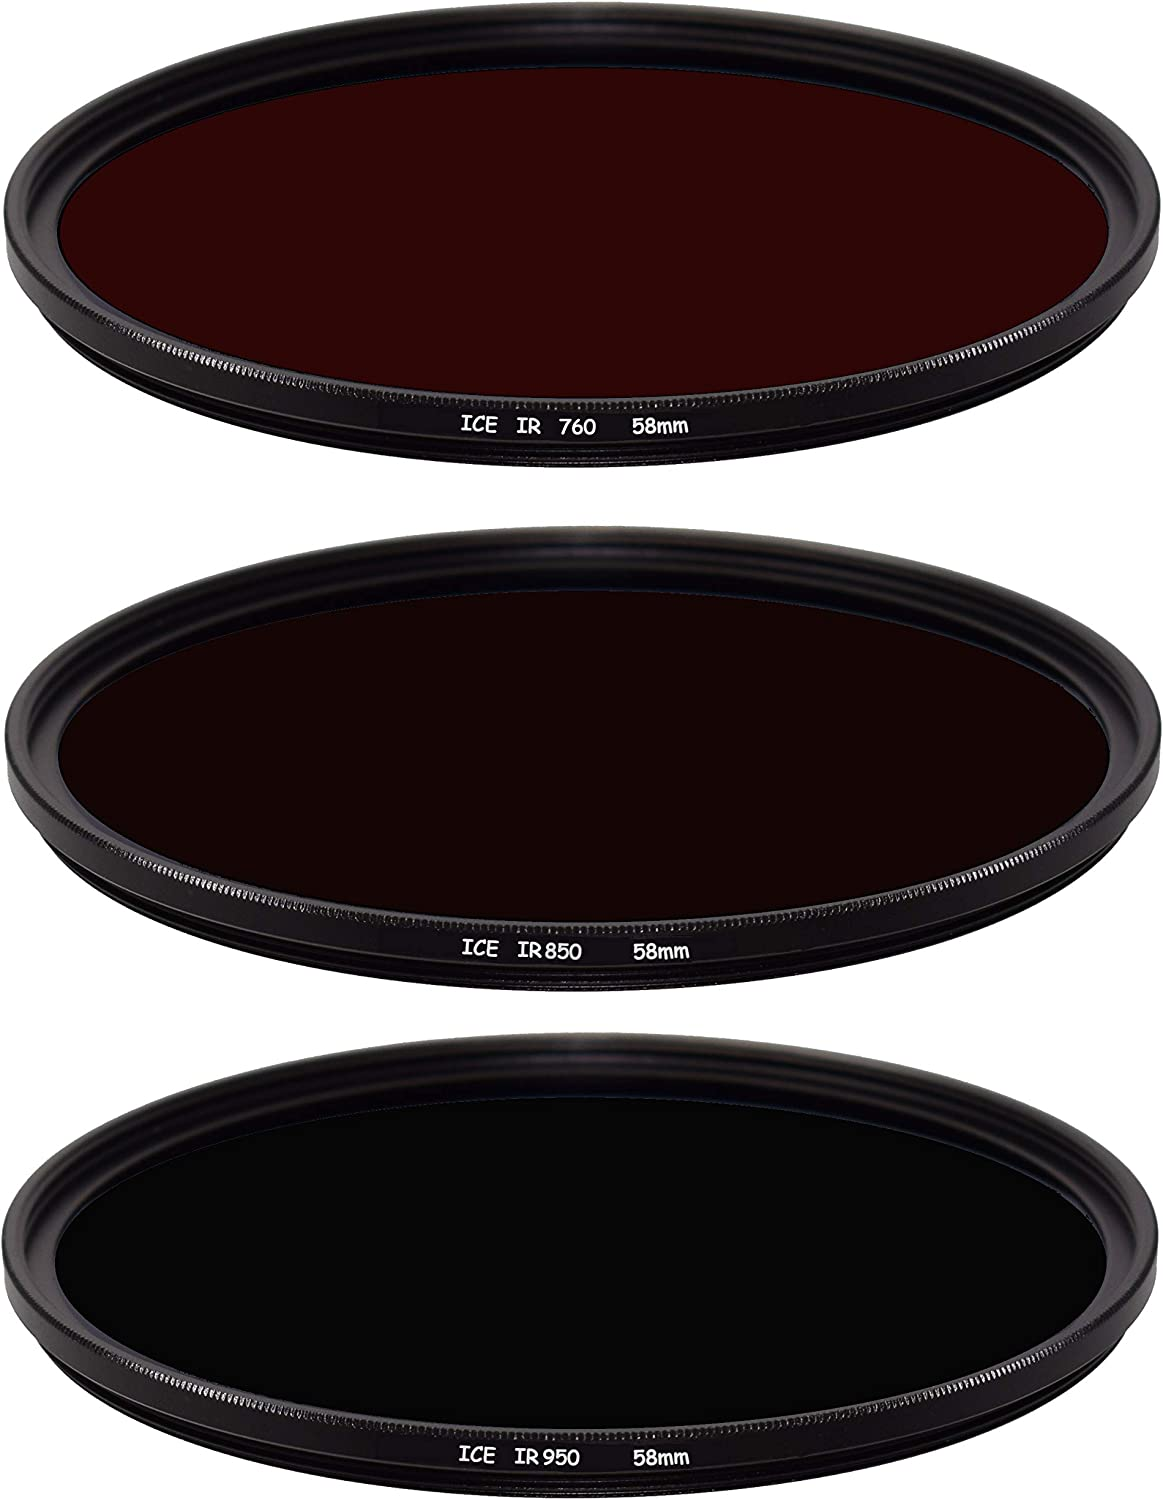 ICE Infrared 3 Filter Max 81% OFF Set 58mm IR S Glass 58 950 850 Limited price Optical 760